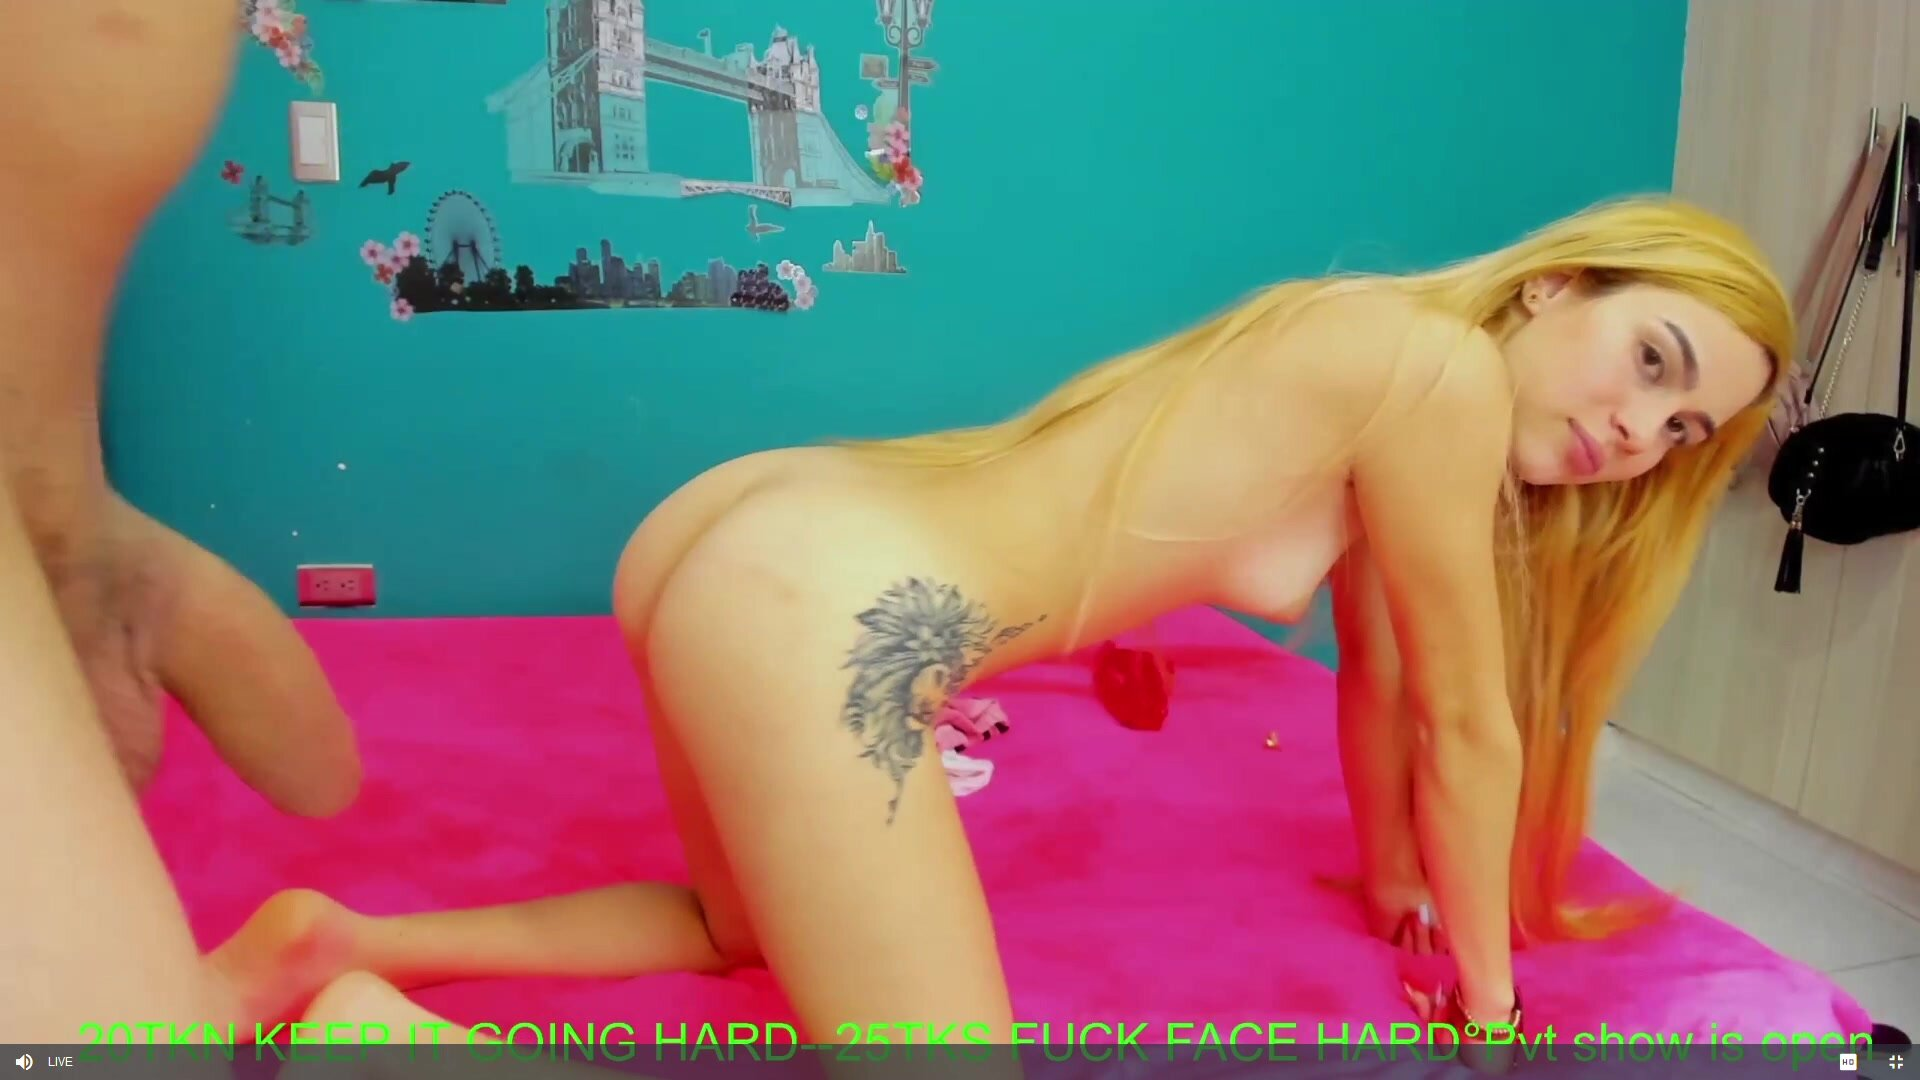 Play_Hard1 Very Young Teen Couple 2021-09-14 637546